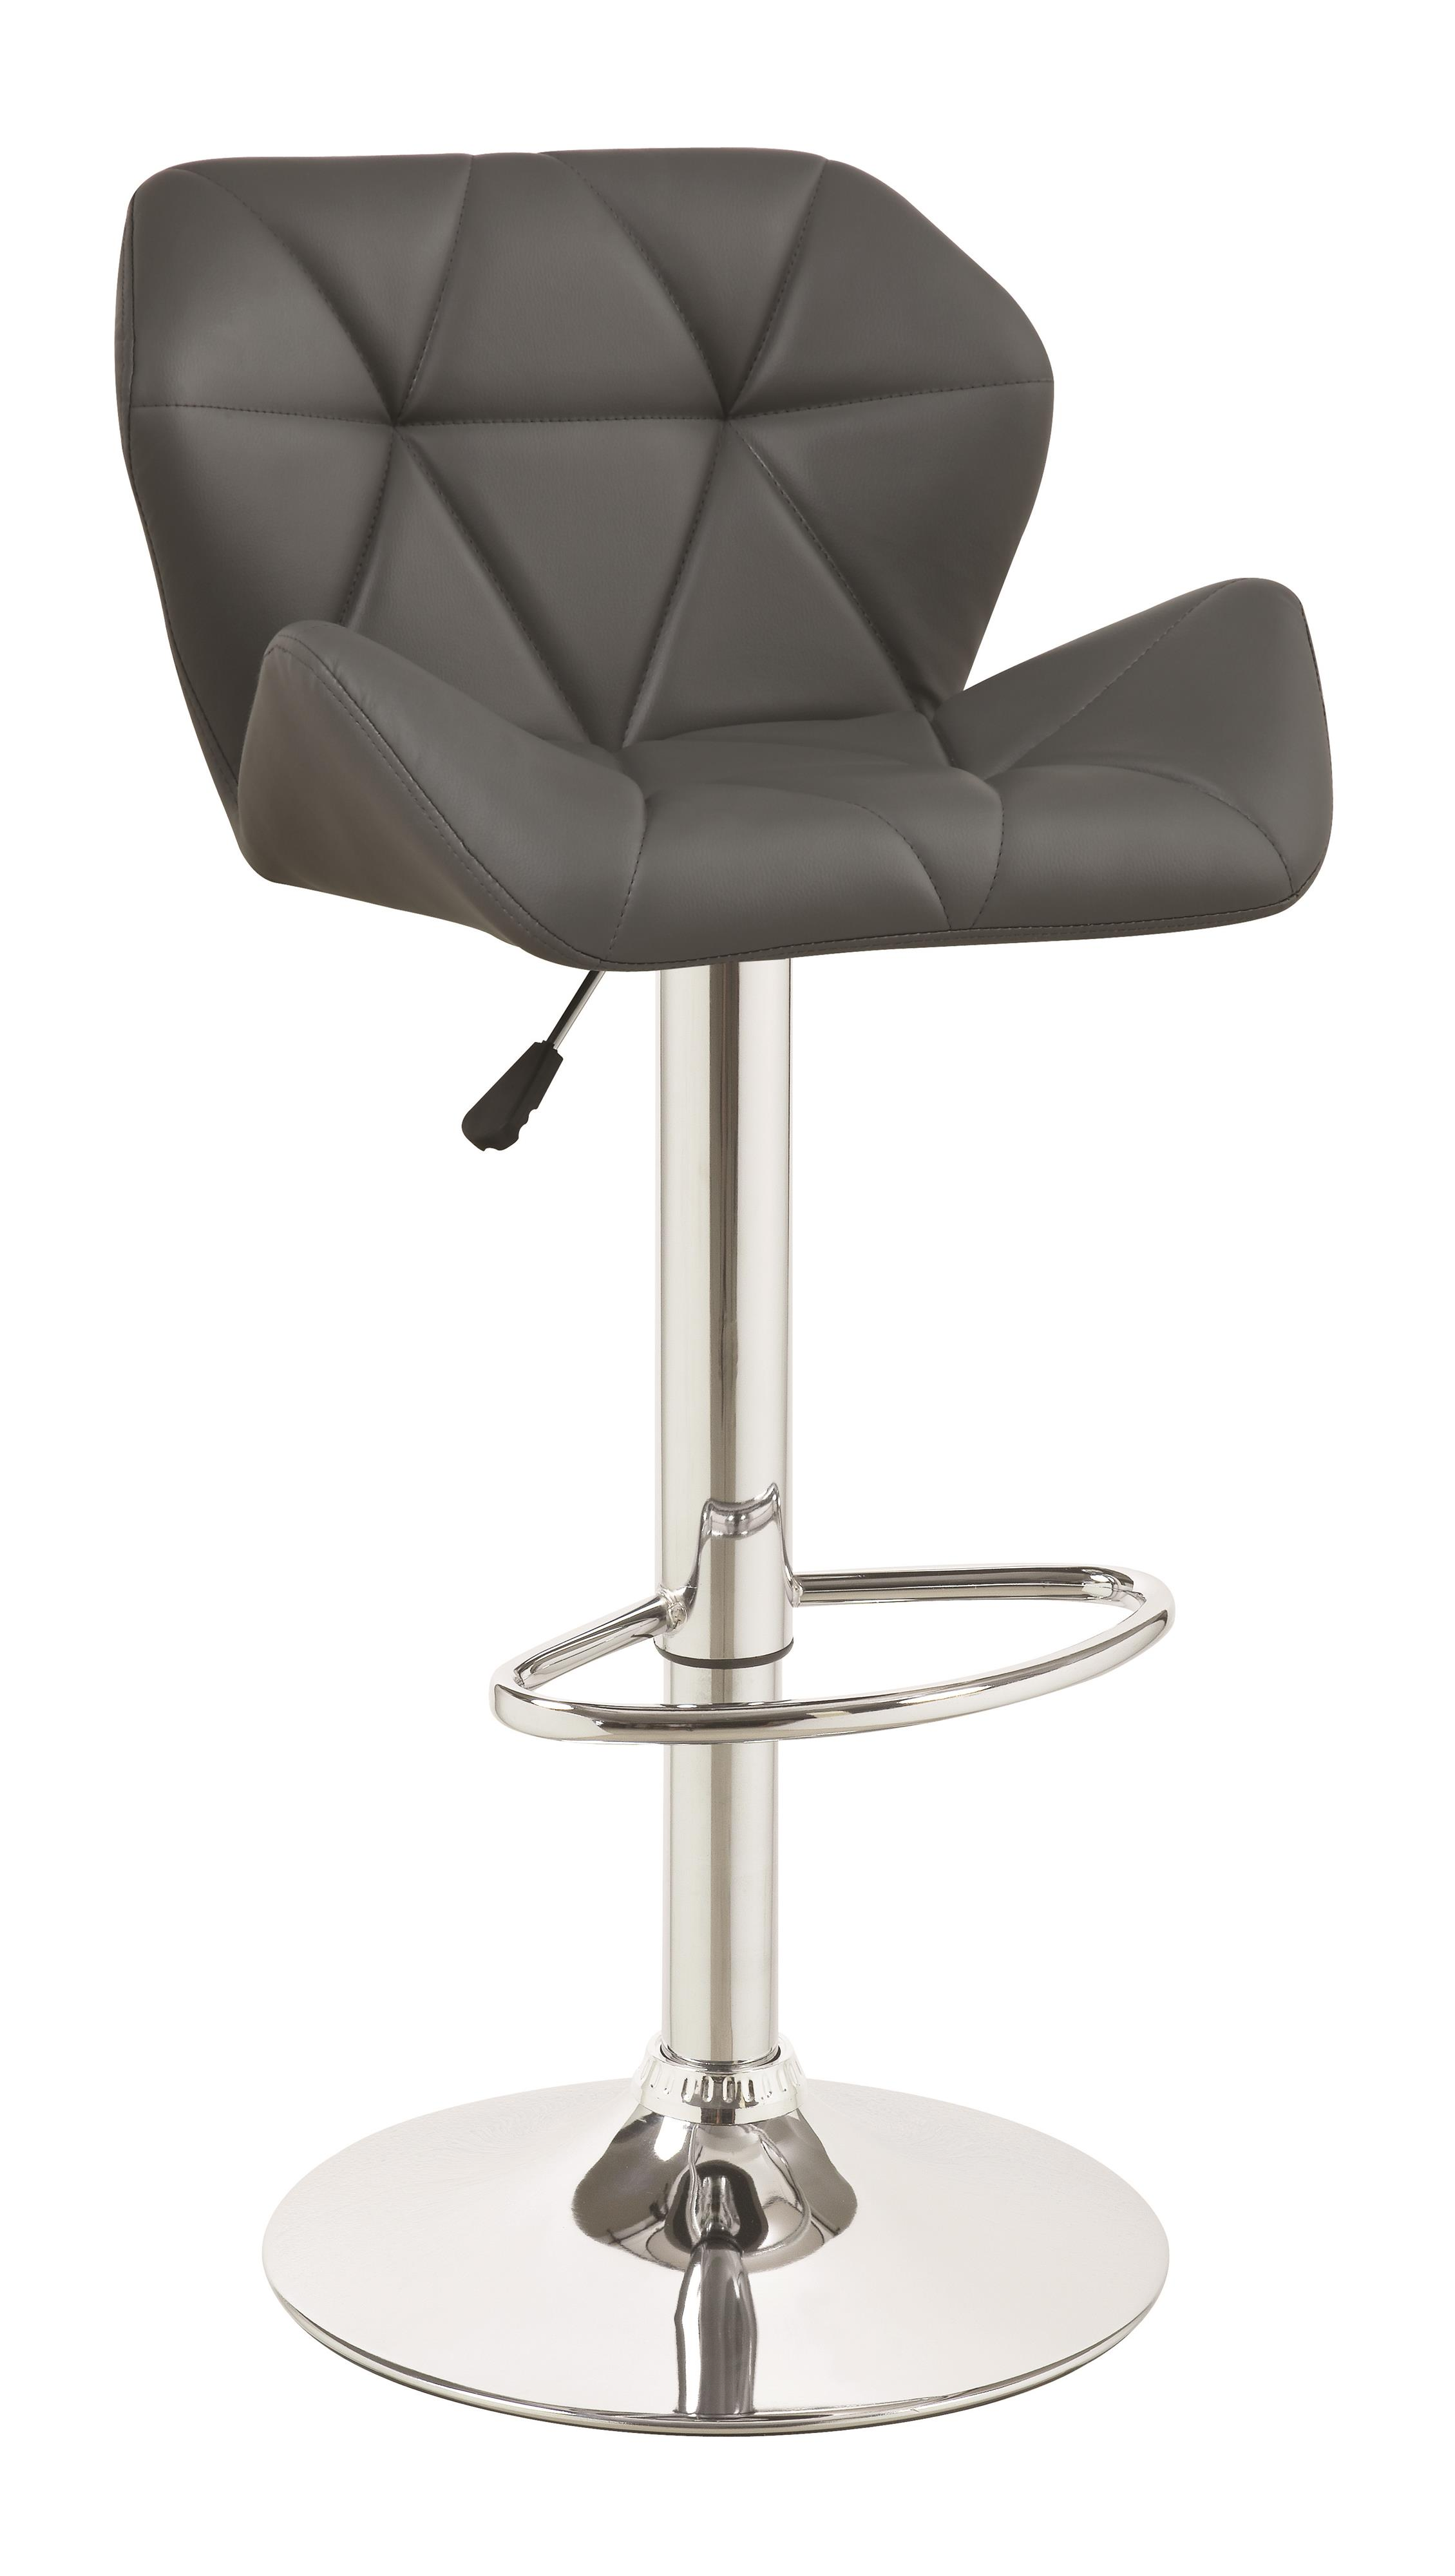 Coaster Dining Chairs and Bar Stools Adjustable Stool - Item Number: 100426